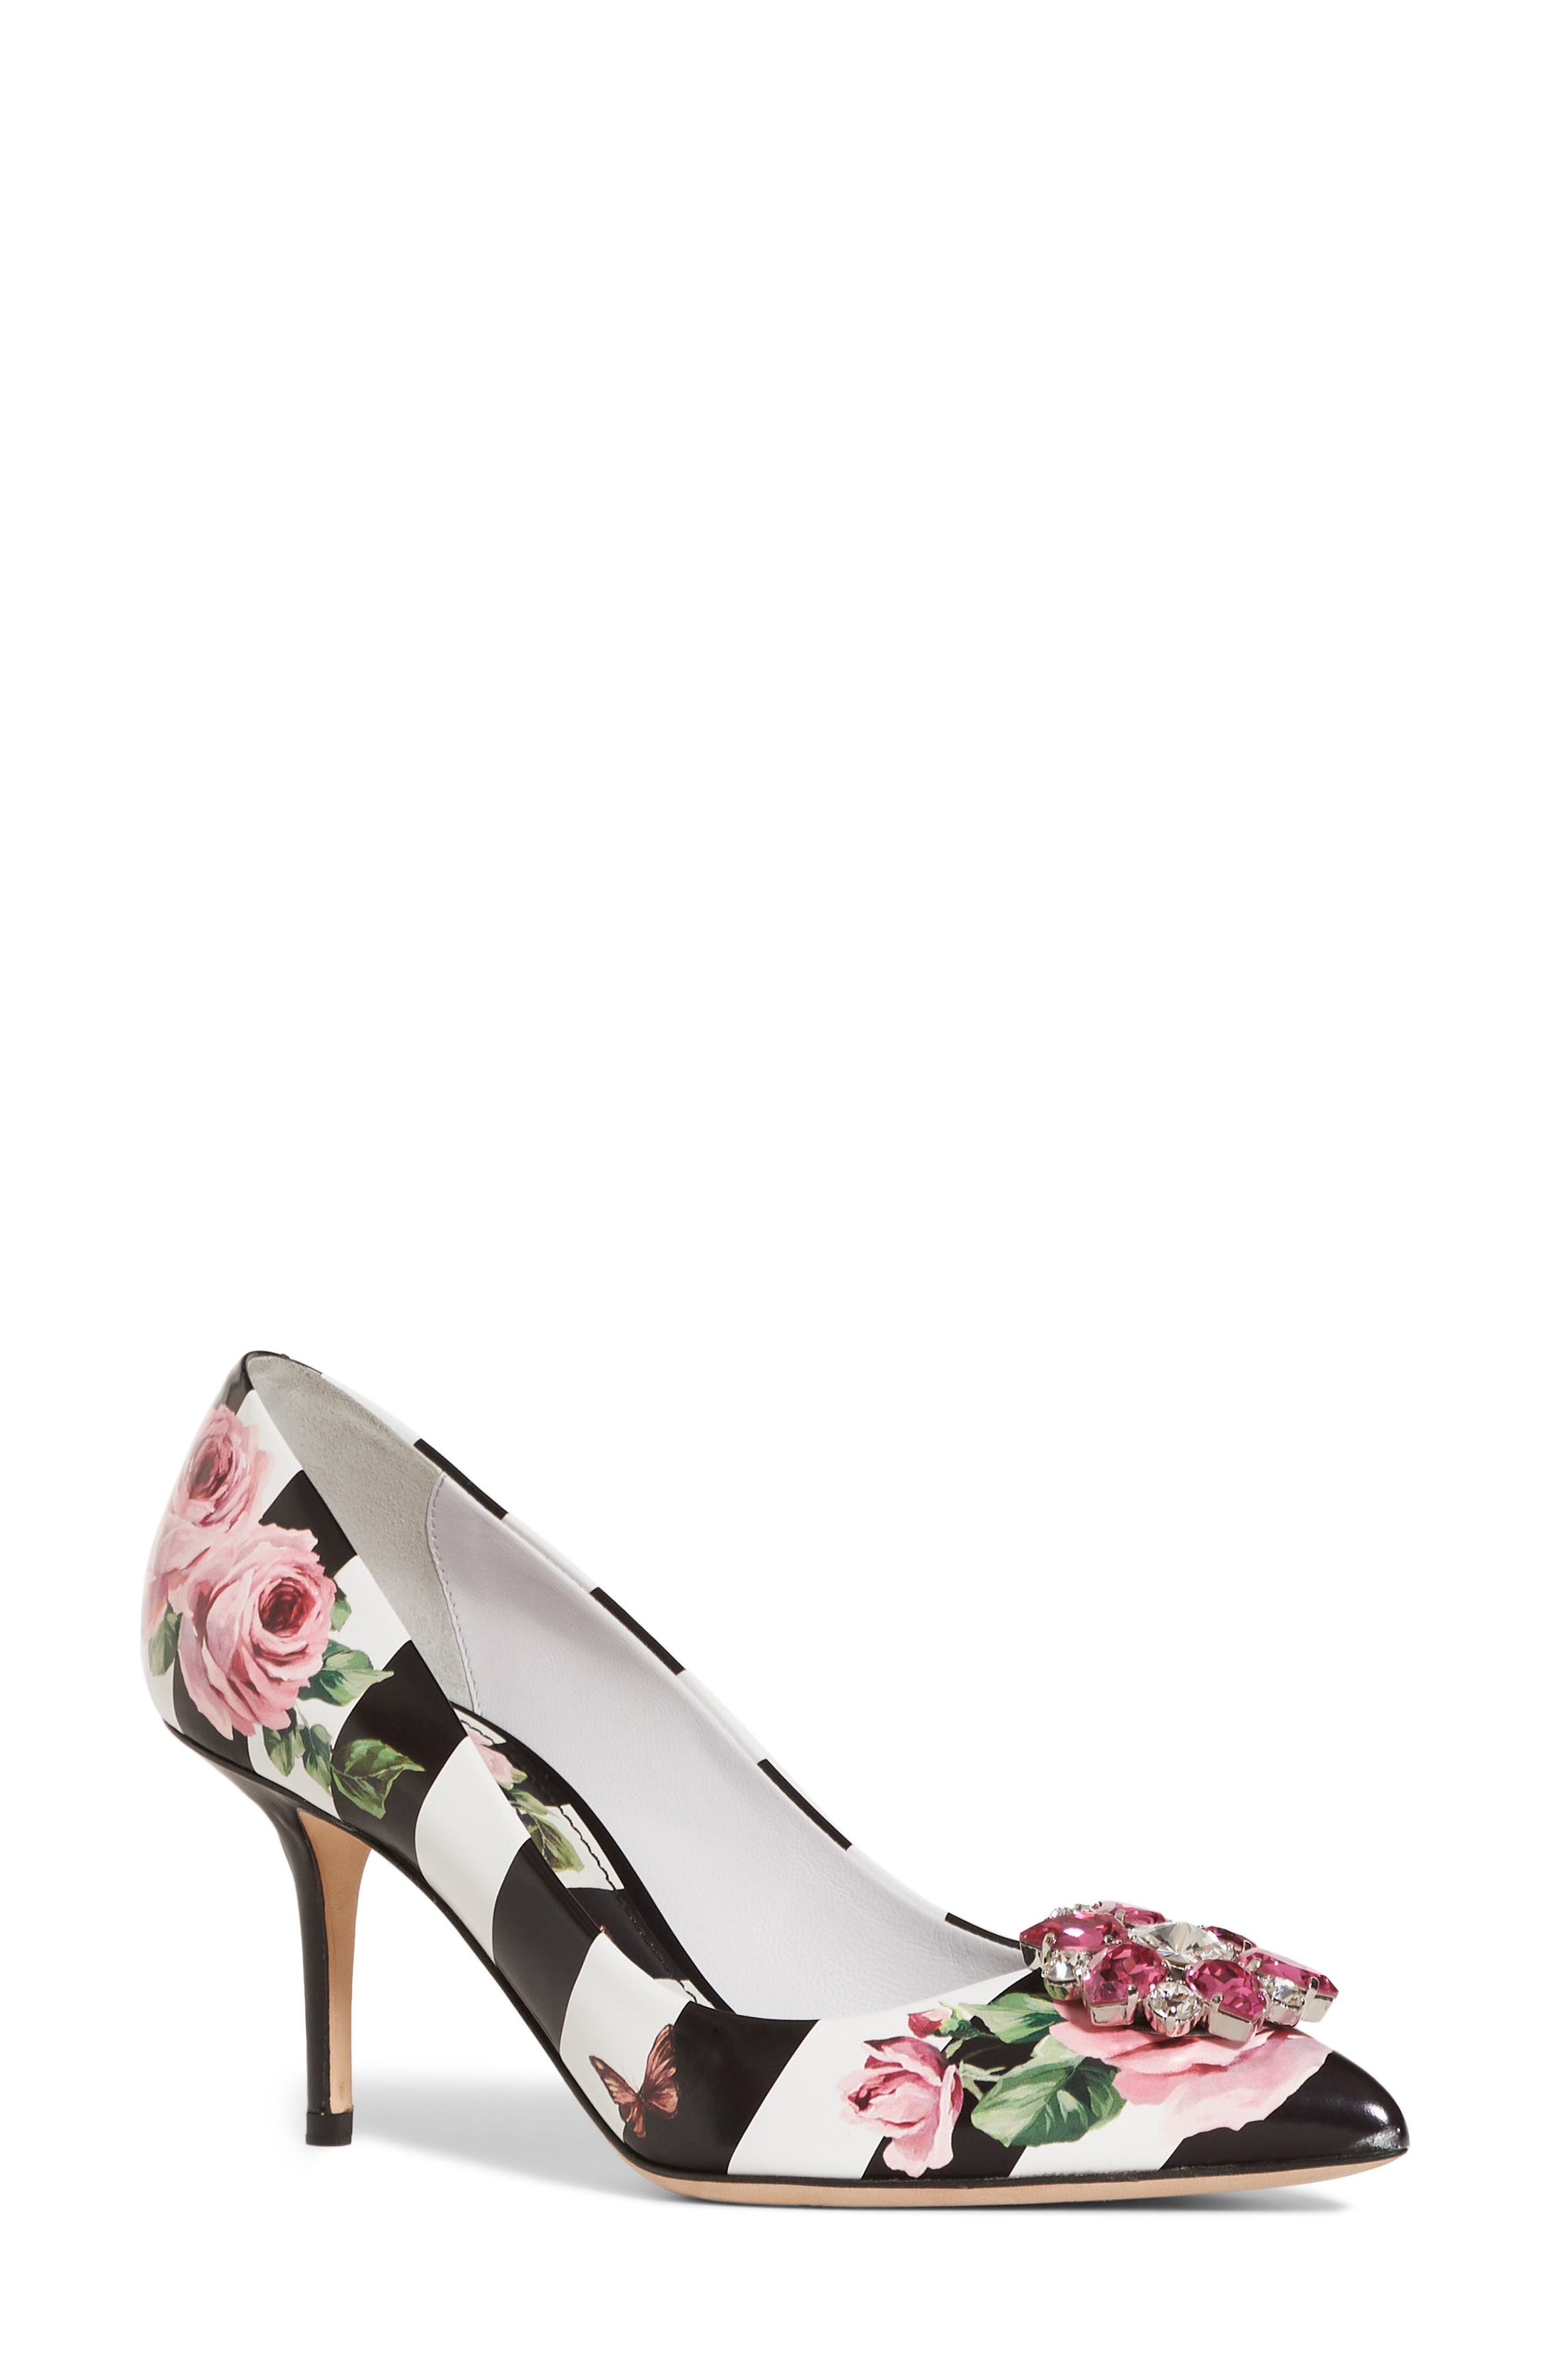 Dolce&Gabbana Stripe Rose Pump (Women)